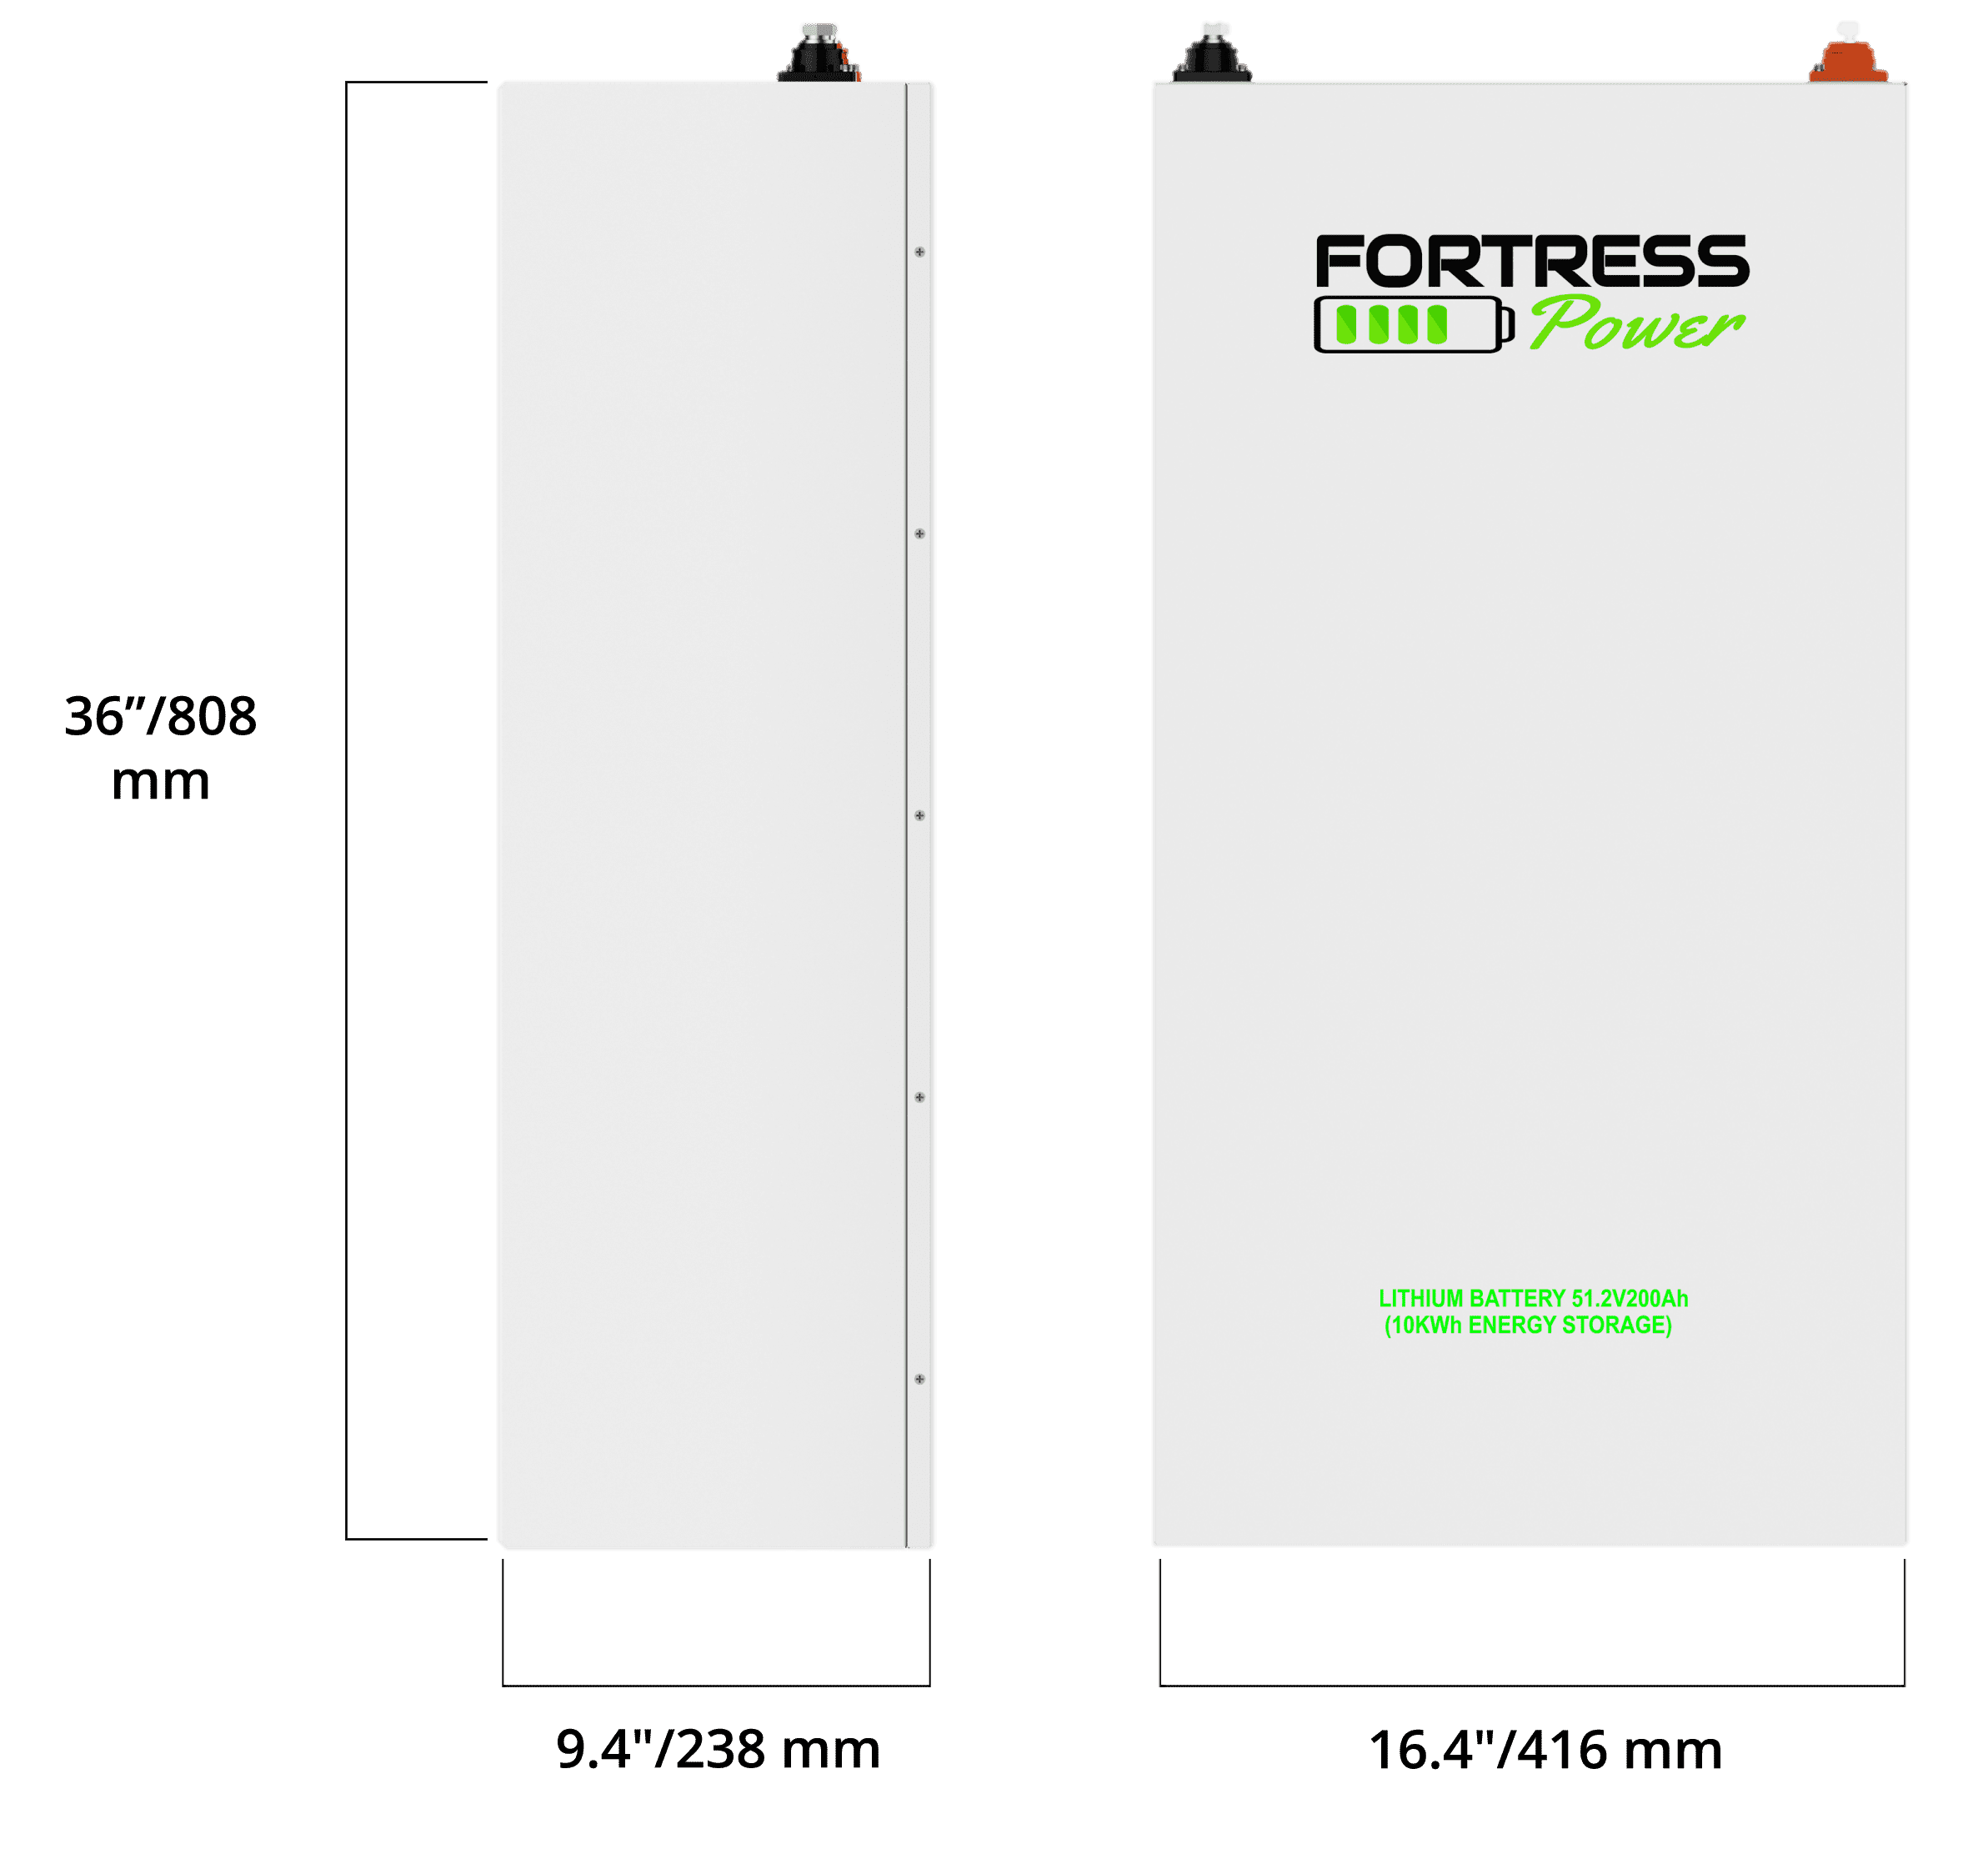 Fortress Battery Specs